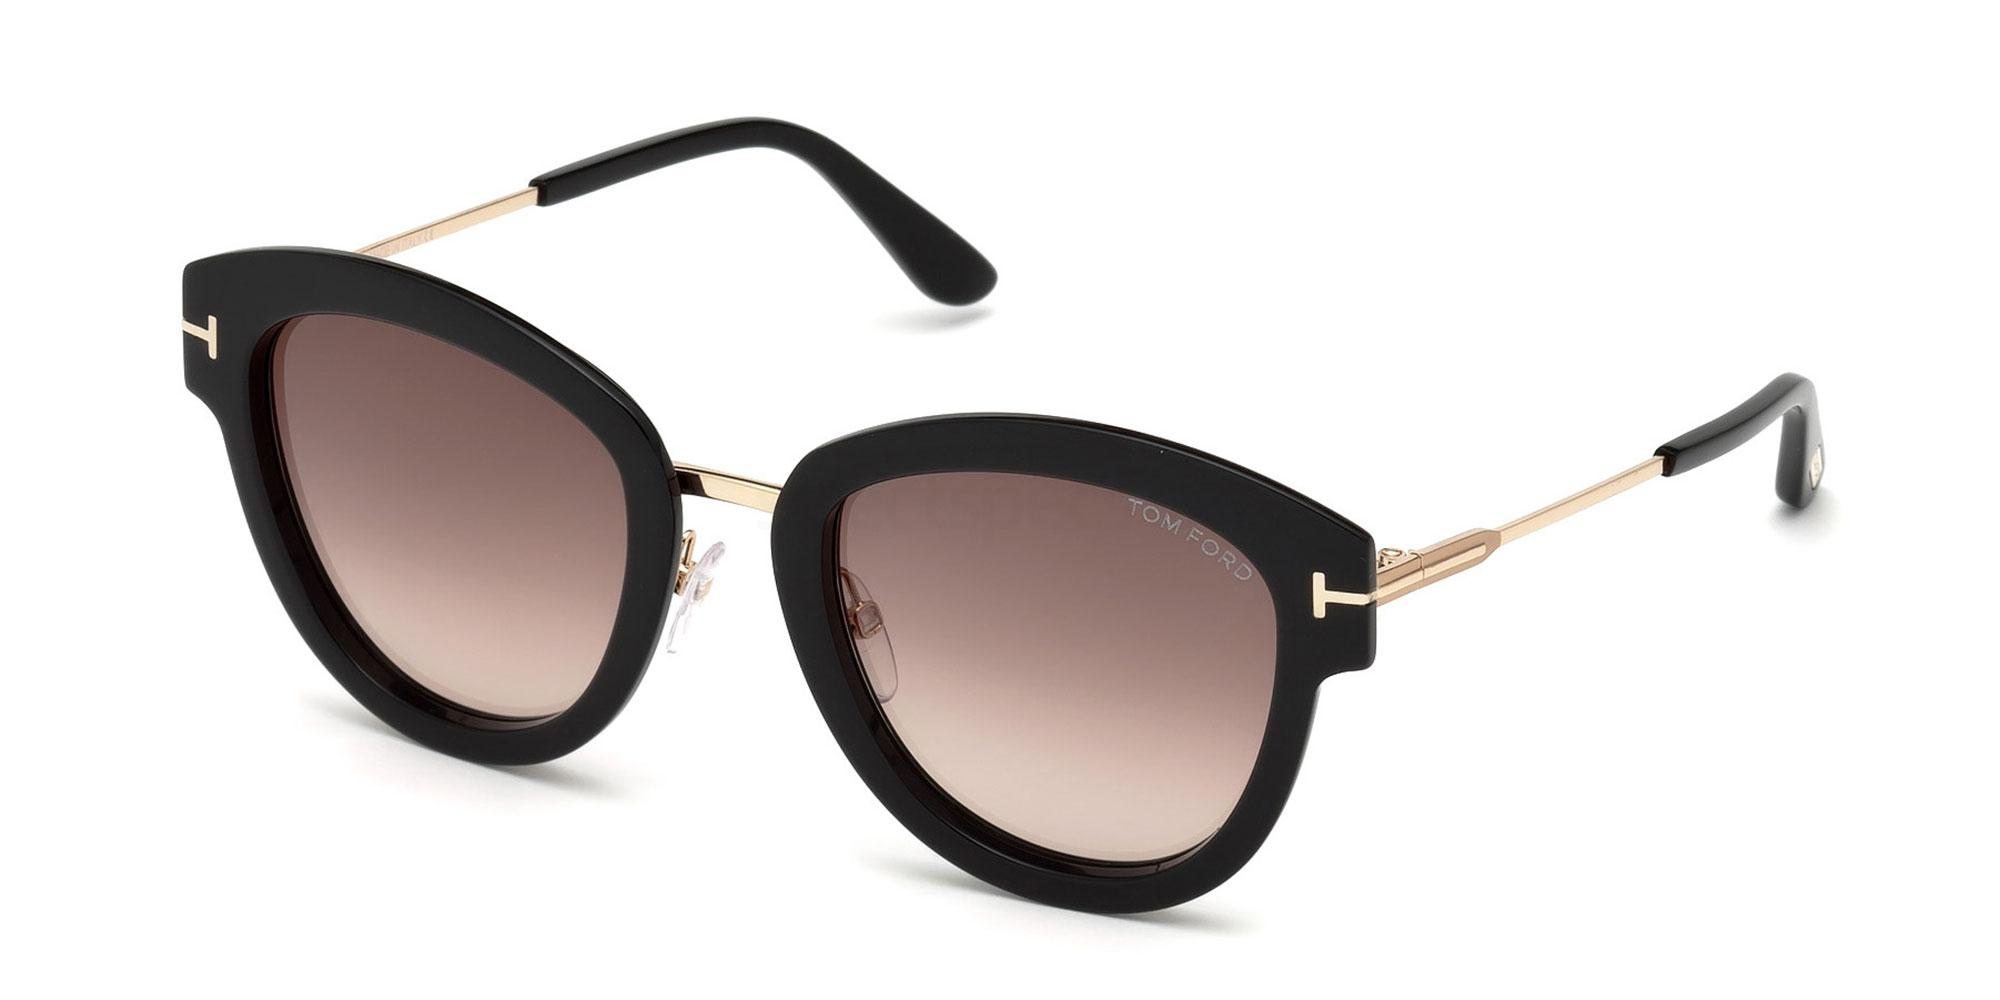 01T FT0574 Sunglasses, Tom Ford